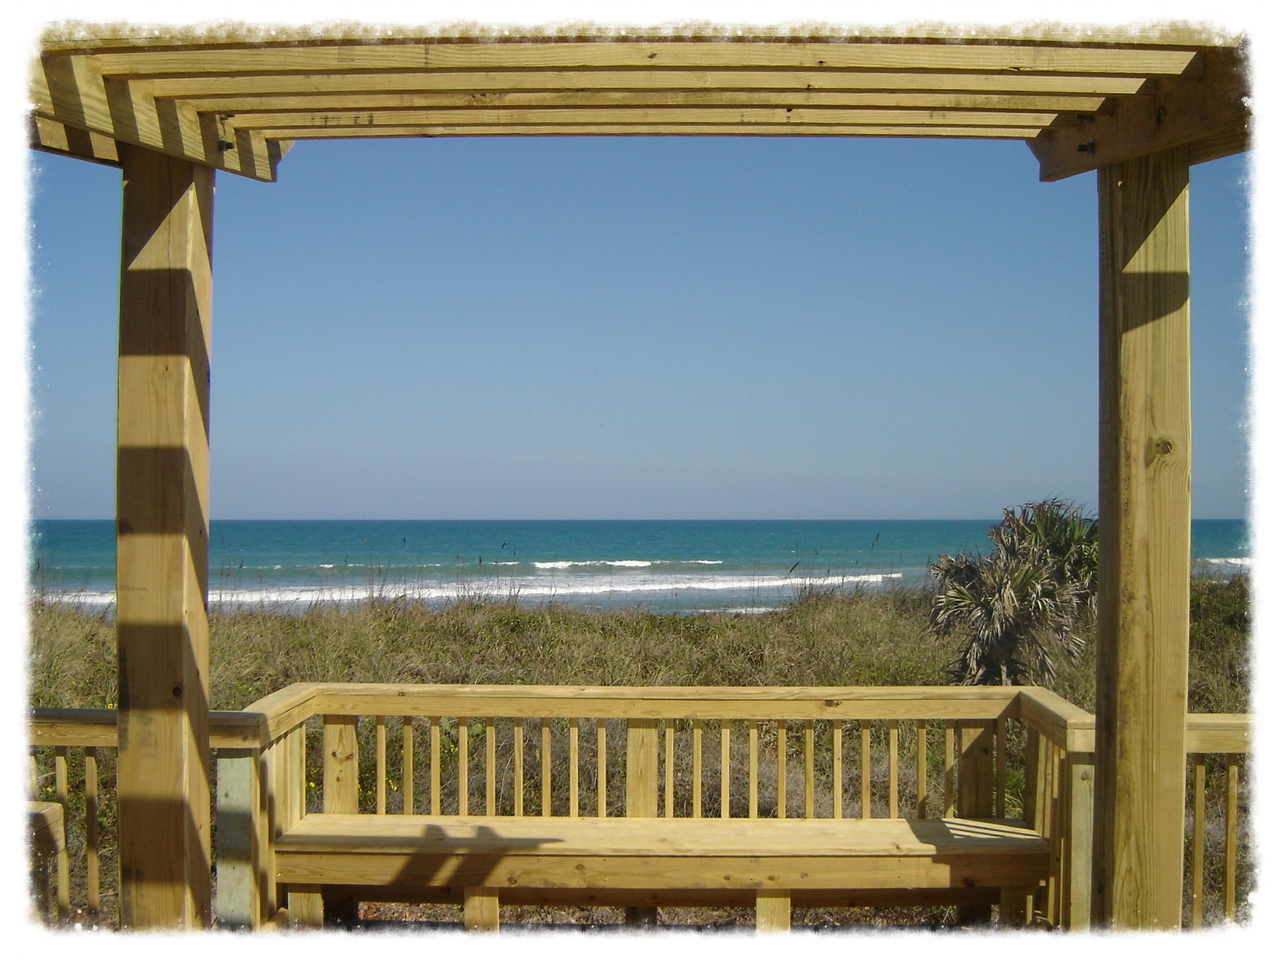 Boardwalk with Bench and Shade Trellis